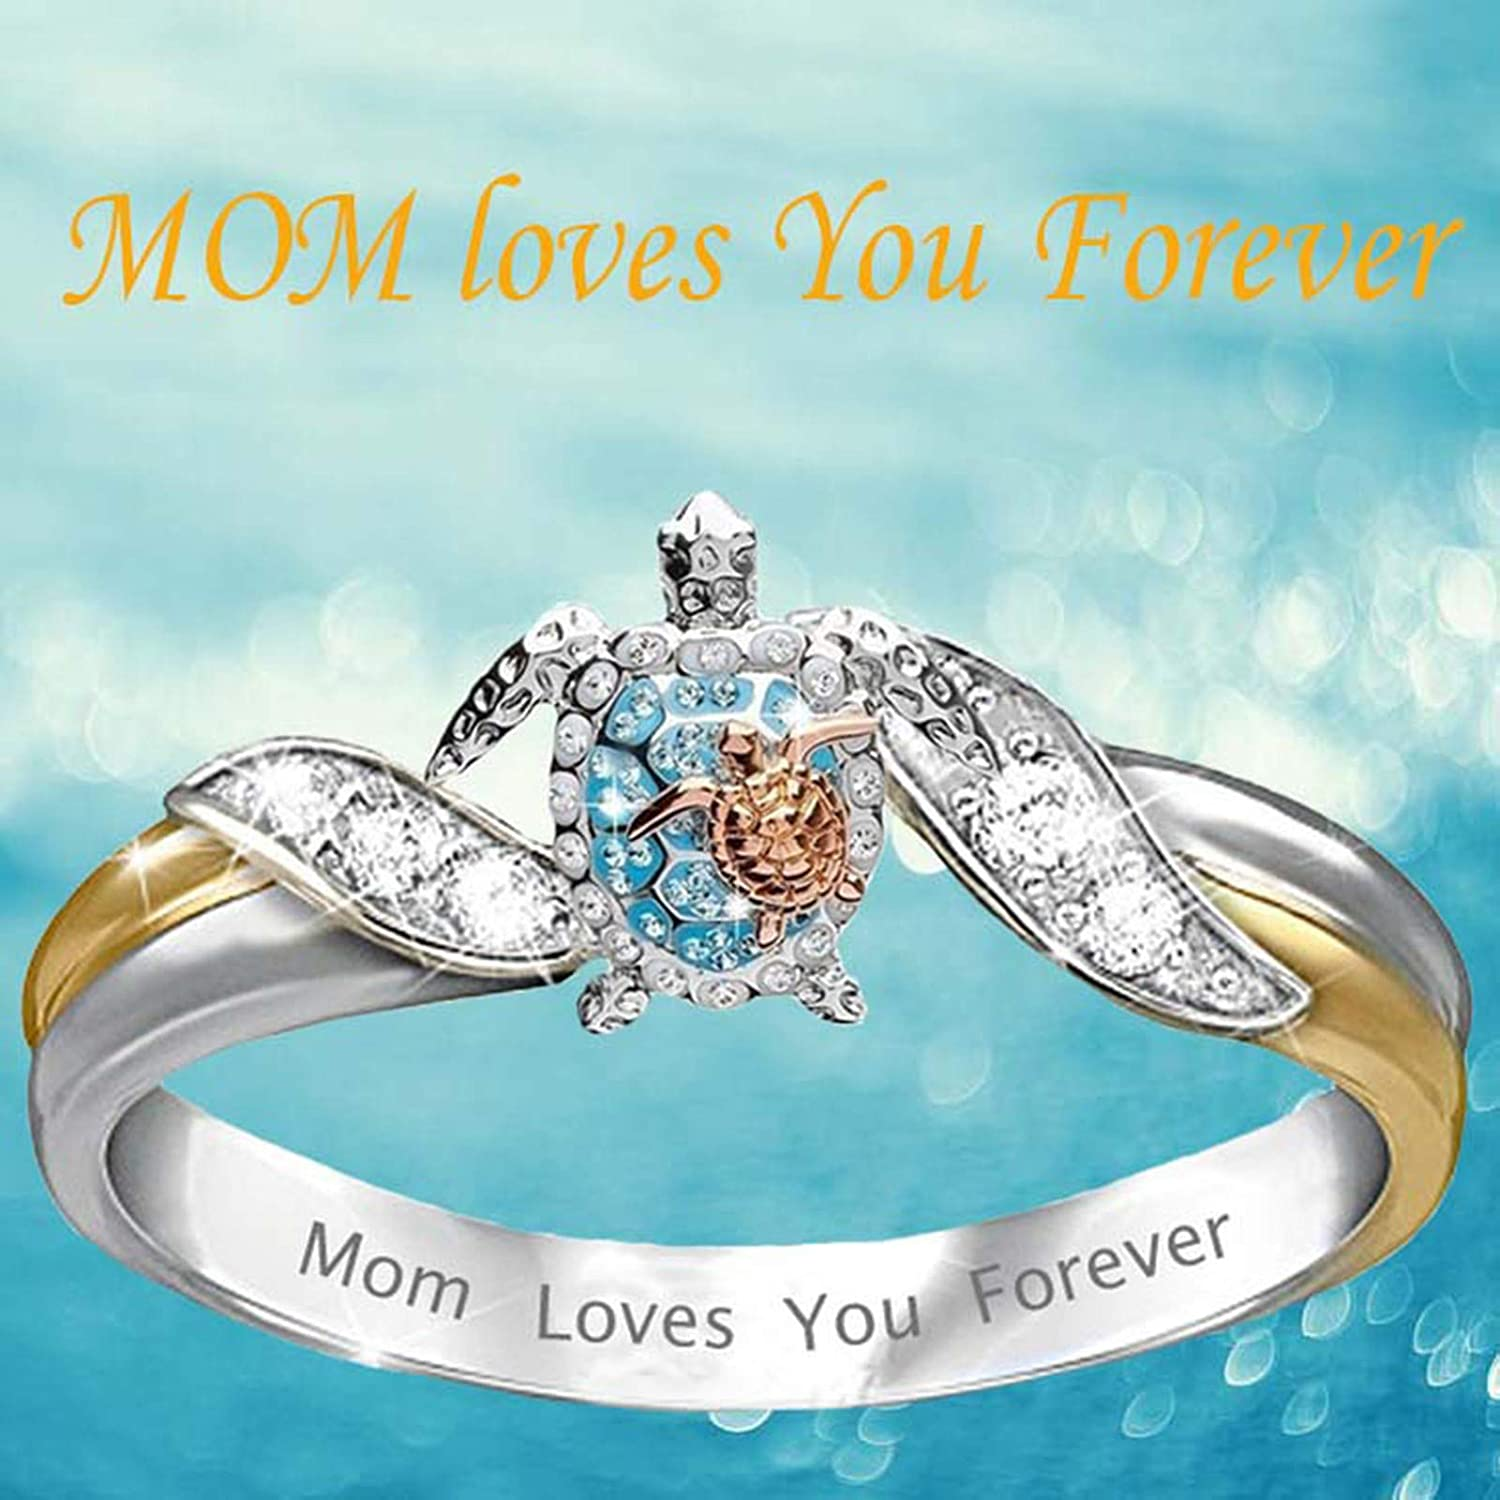 Turtle Statement Ring Mom Loves You Forever, Diamond Microinlaid Zircon Ring Jewelry, Turtle Ring Cat Ring Elephant Ring Animal Ring for Mother's Day Size 5-10